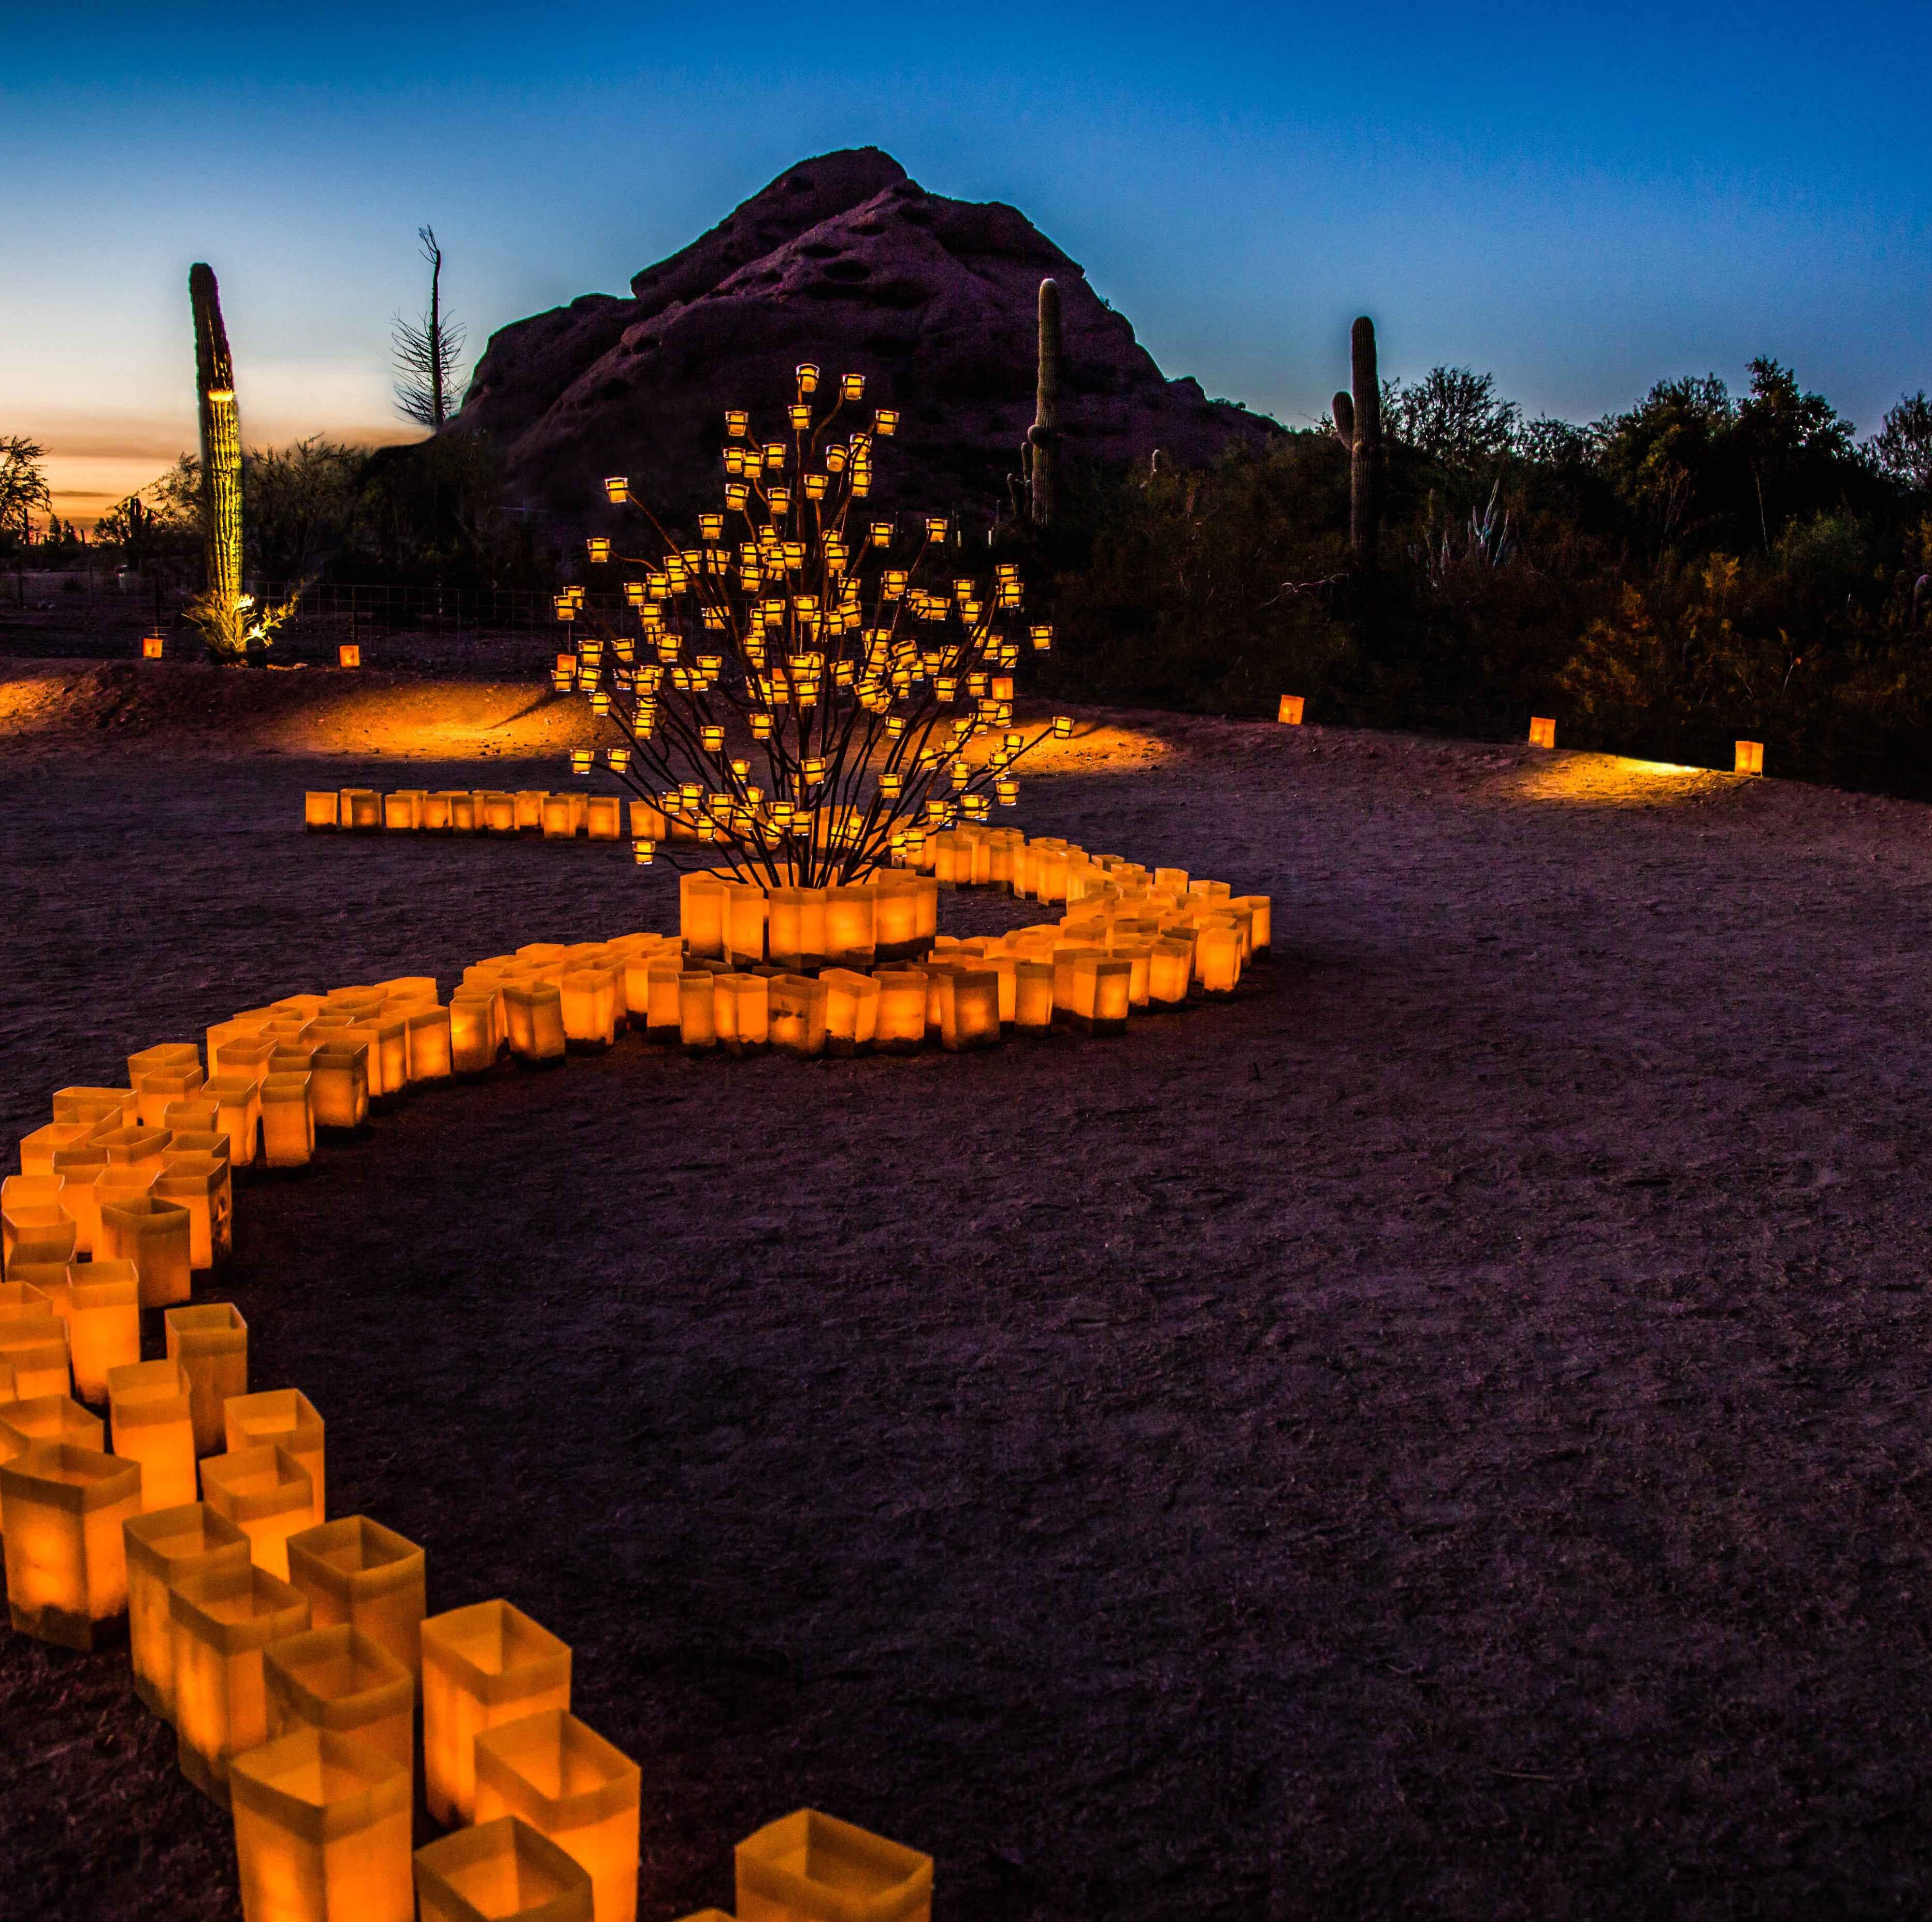 The Puffer Snuffer: How to blow out 8,000 candles at Las Noches de las Luminarias